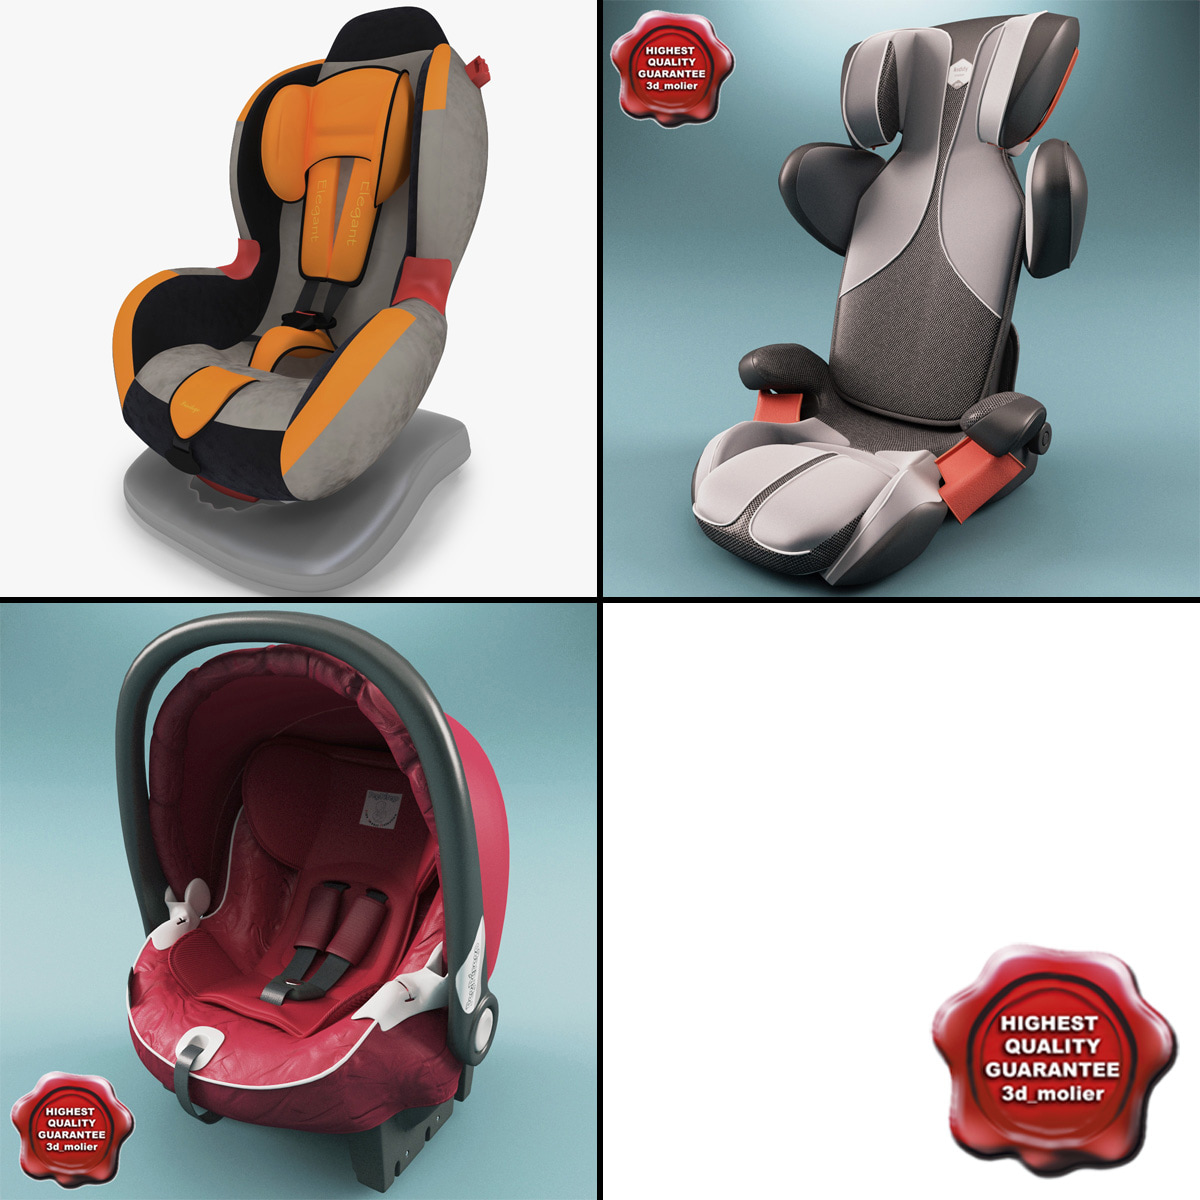 kiddy car seats v2 3d model